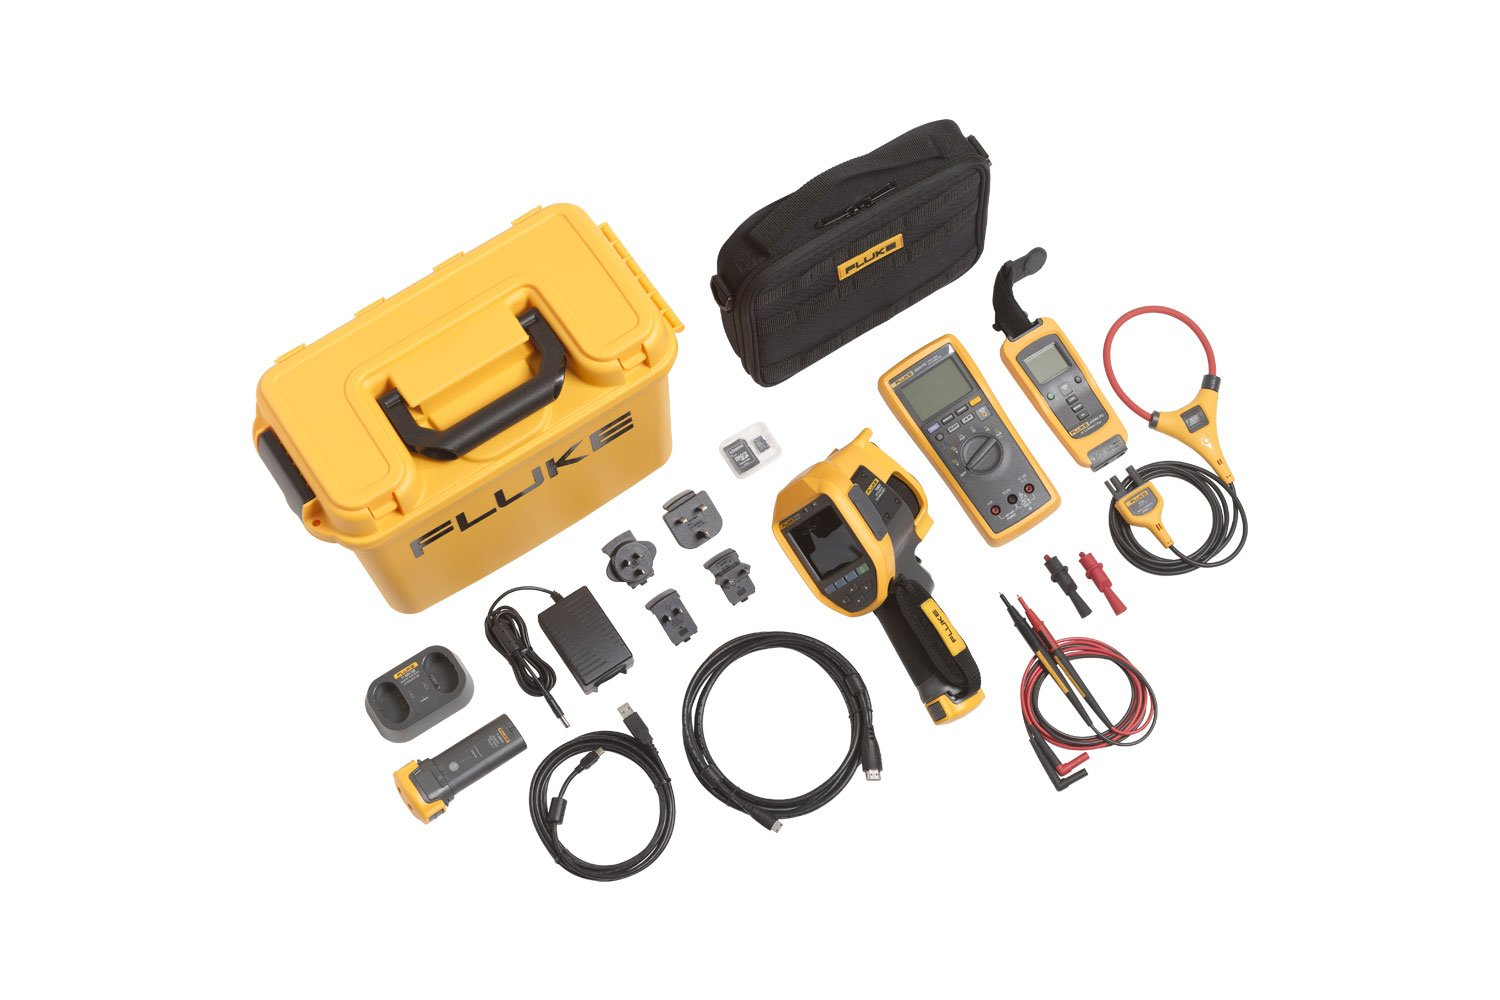 Access Tools Ultra Probe 2 Power Multi Tester Voltage Ground Continuity Durable